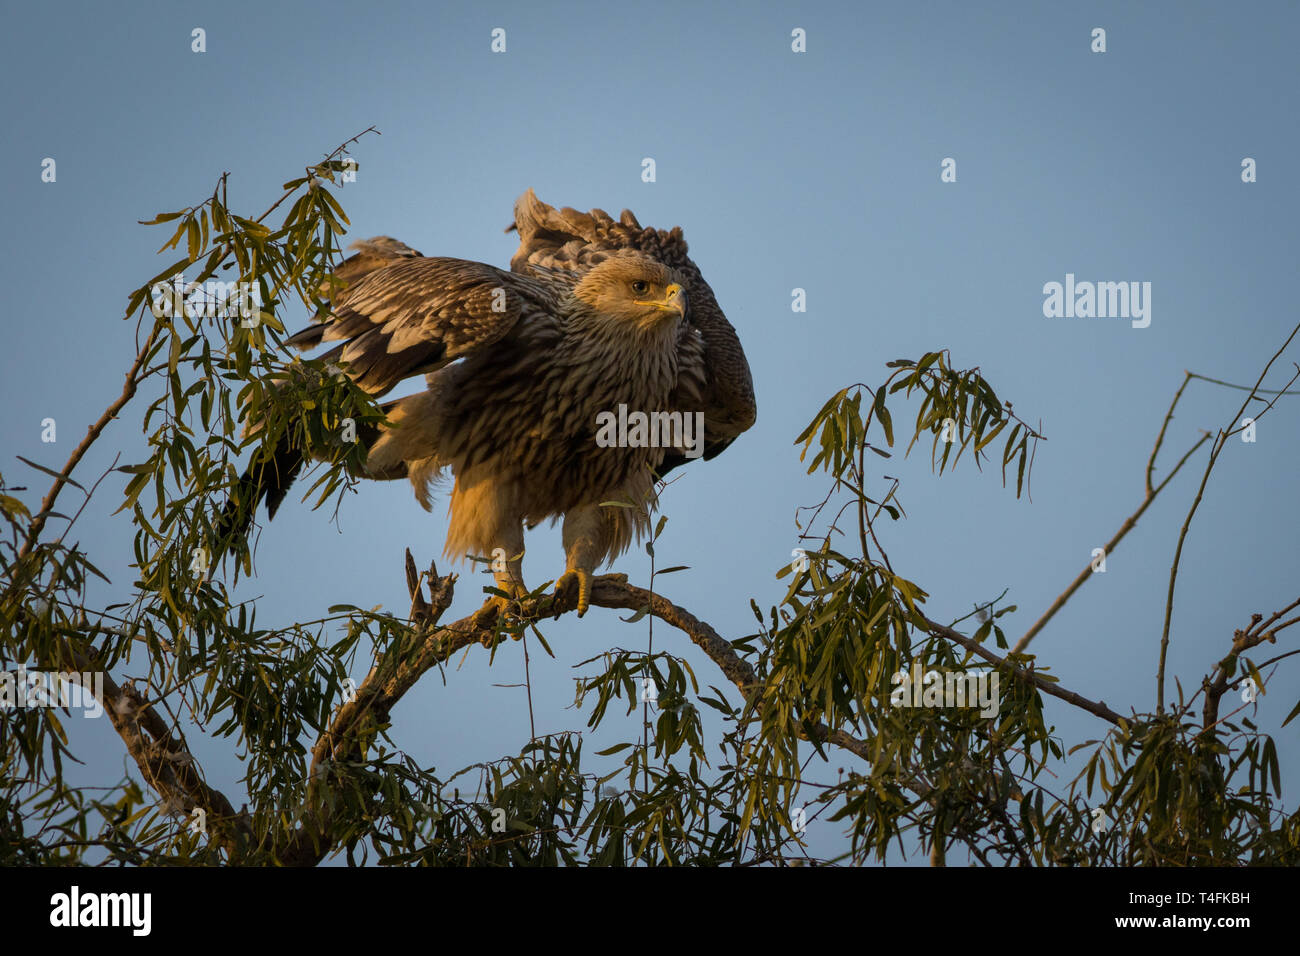 An aggressive eastern imperial eagle or aquila heliaca with wings open at jorbeer conservation reserve, bikaner, rajasthan, india - Stock Image